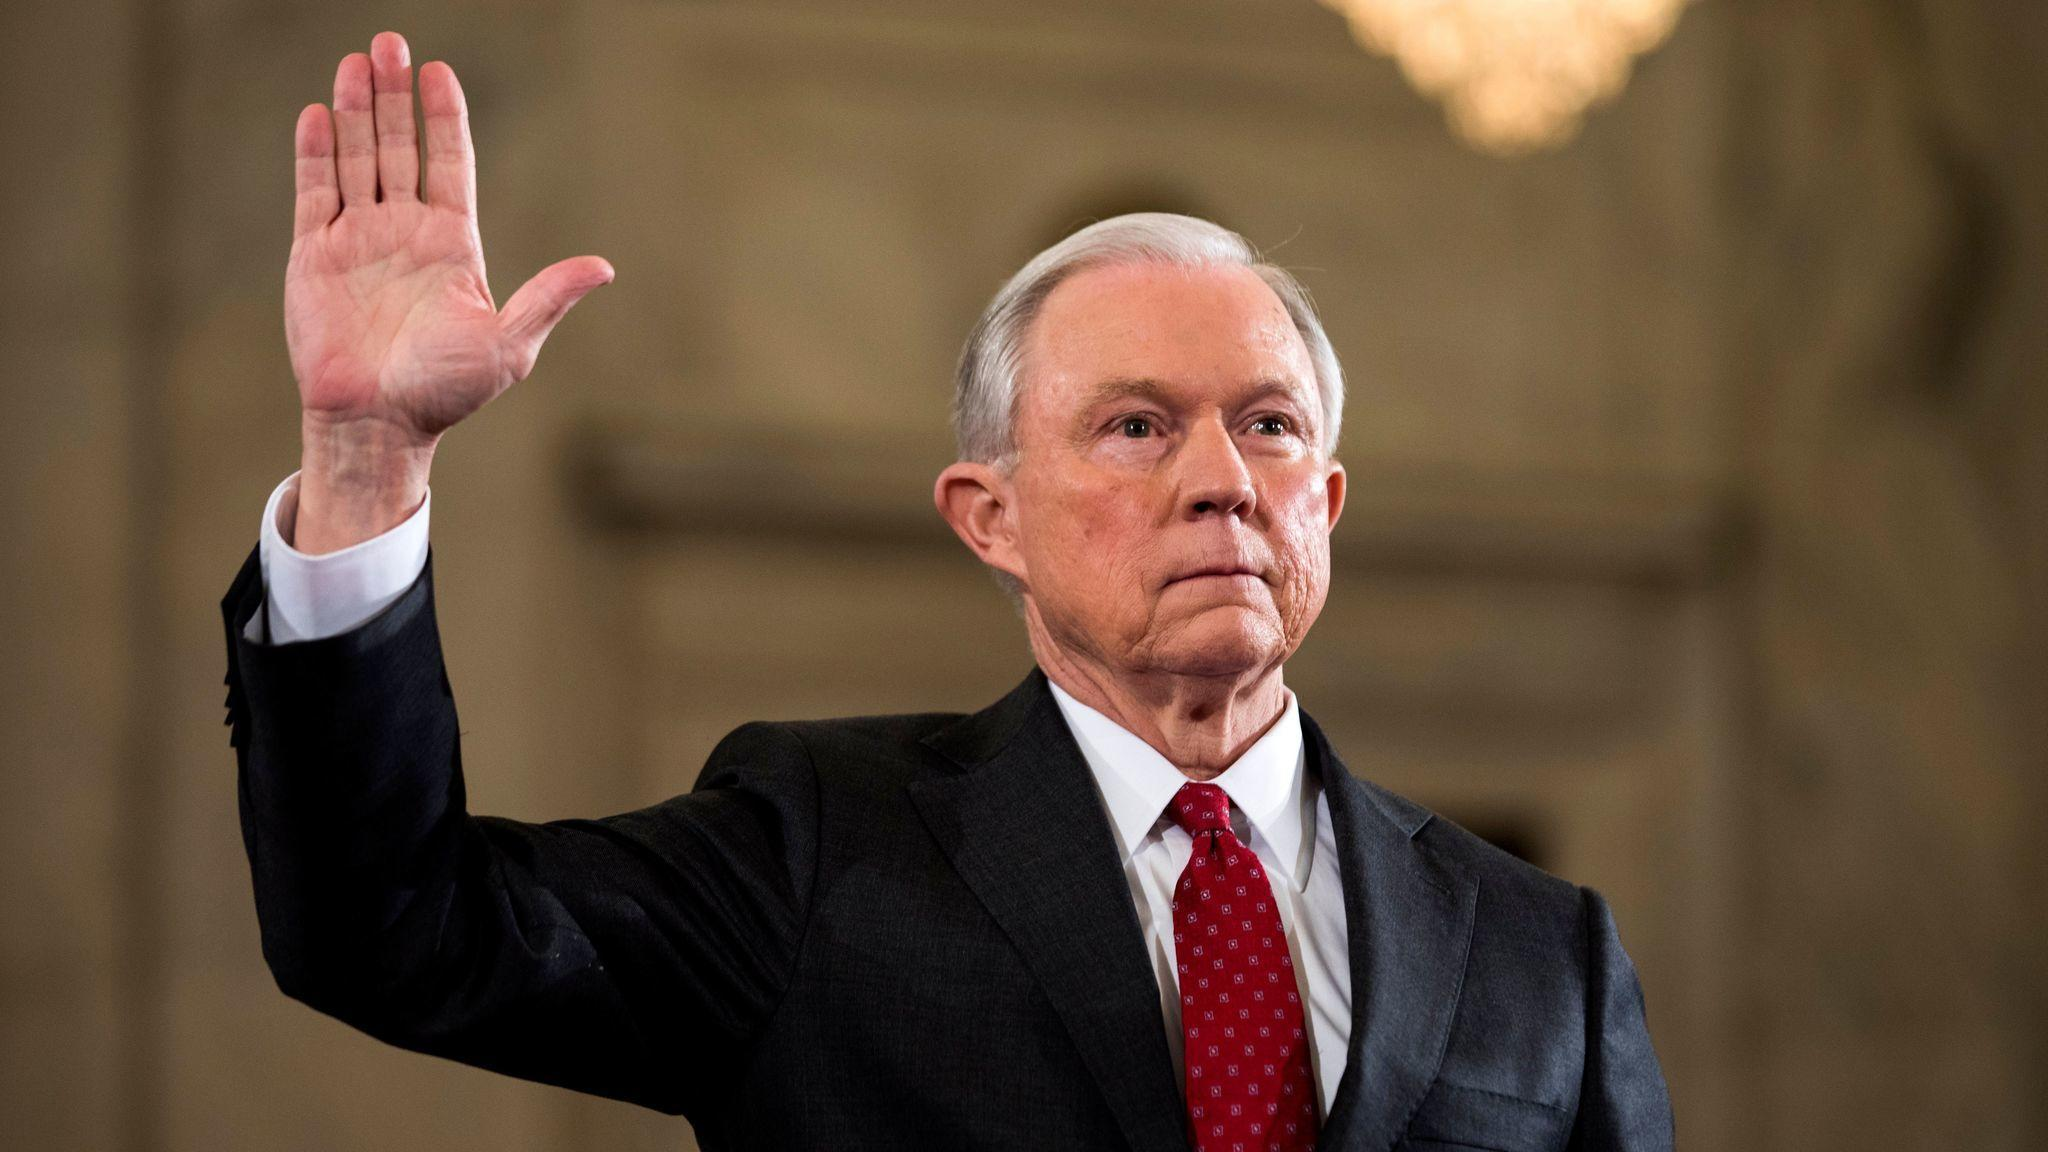 547d3b7a41 Jeff Sessions is scheduled to testify today before the Senate Select  Committee on Intelligence. If you re planning to watch or just want to  catch up on the ...